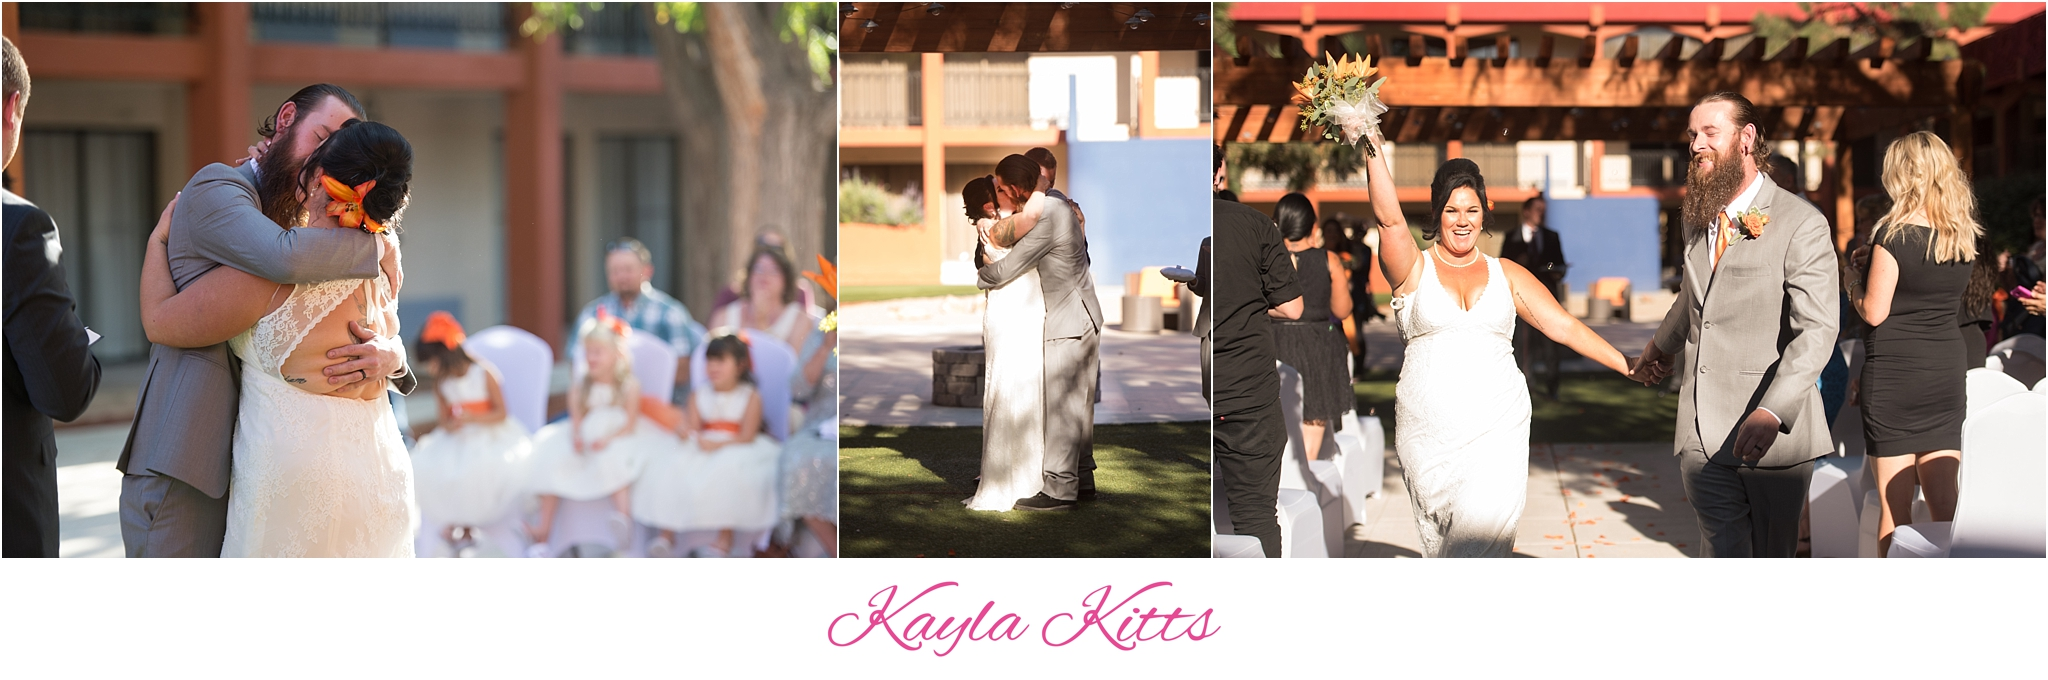 kayla kitts photography - albuquerque wedding photographer - albuquerque wedding photography - albuquerque venue - casa de suenos - hotel albuquerque wedding - new mexico wedding photographer - los poblanos wedding_0007.jpeg